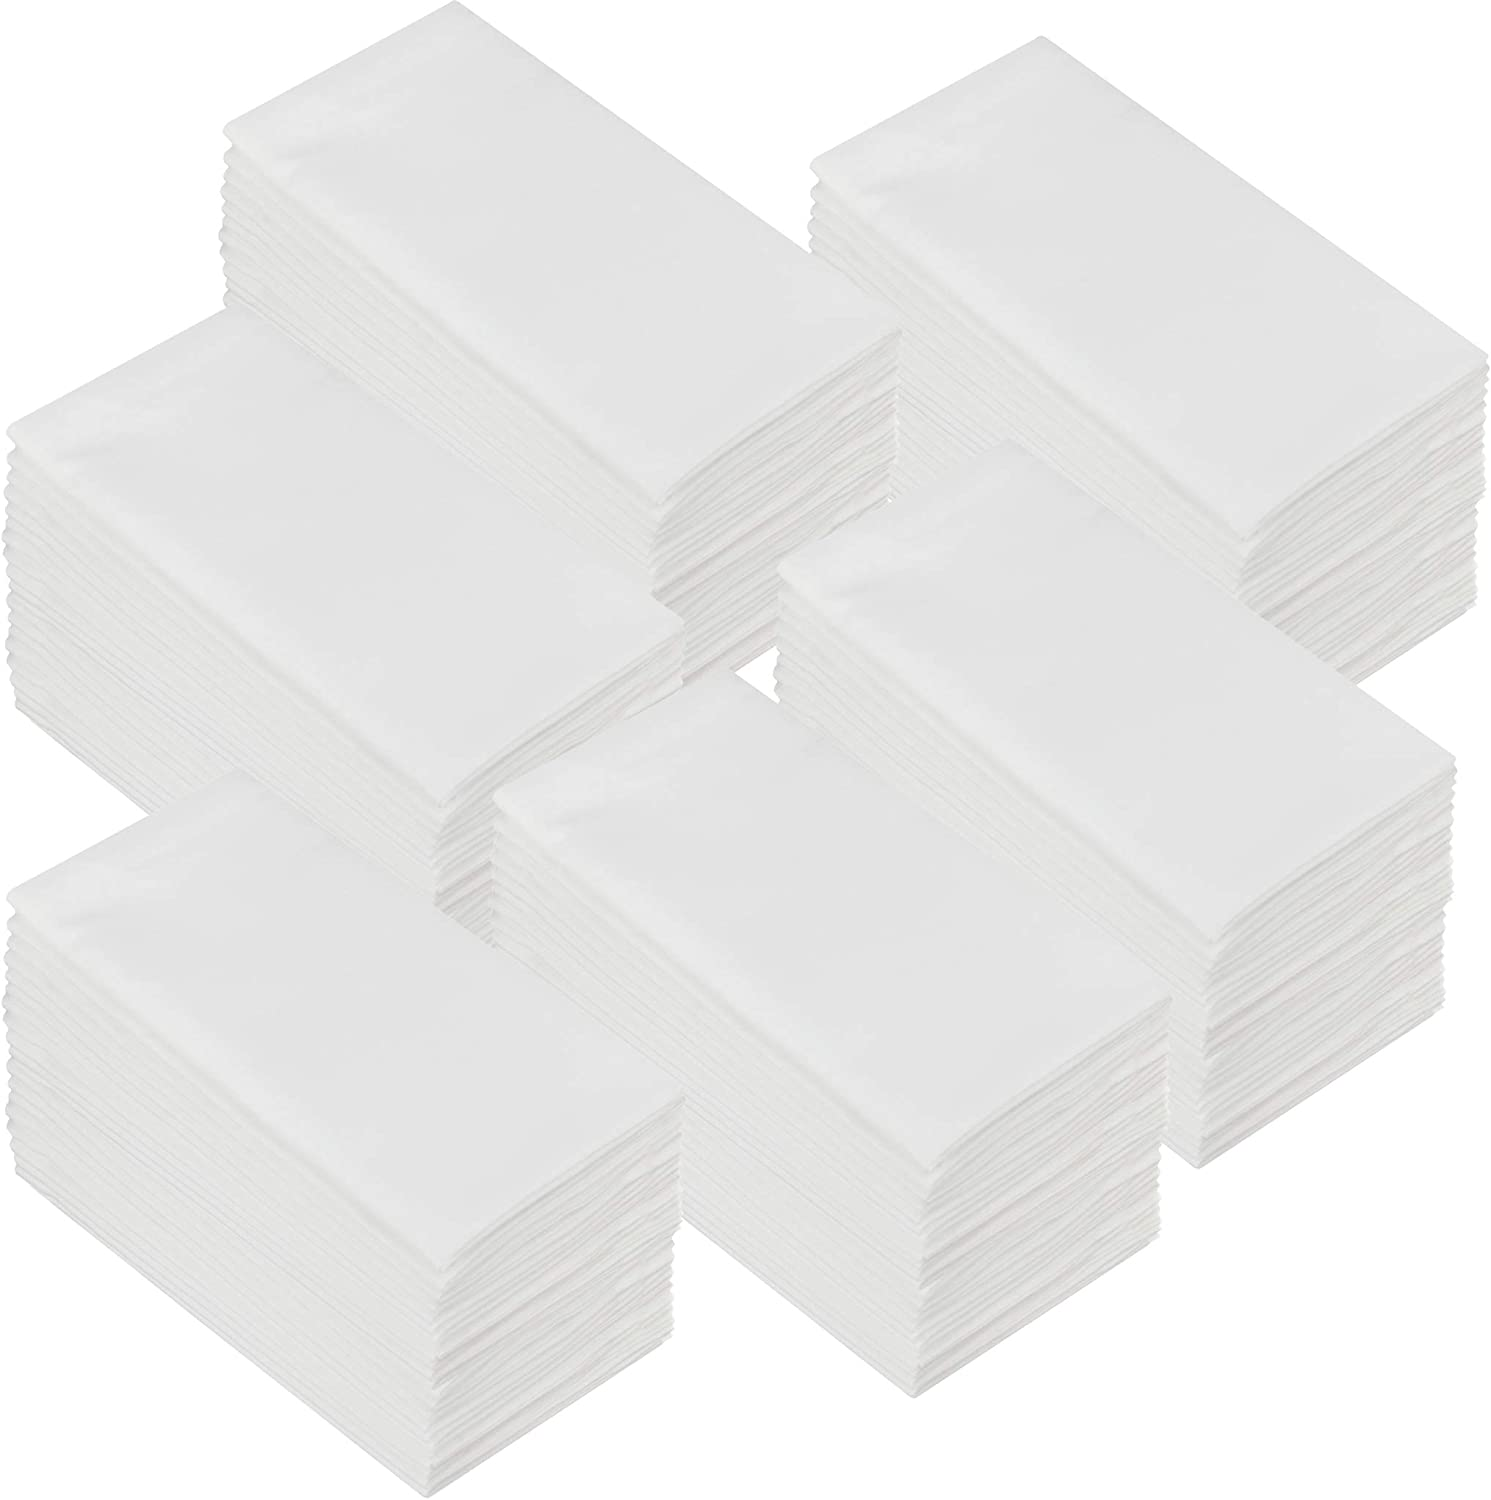 COTTON CRAFT Napkins - 144 Pack Oversized Dinner Napkins 20x20 White - 100% Cotton - Tailored with Mitered Corners and a Generous Hem - Napkins are 38% Larger Than Standard Size Napkins